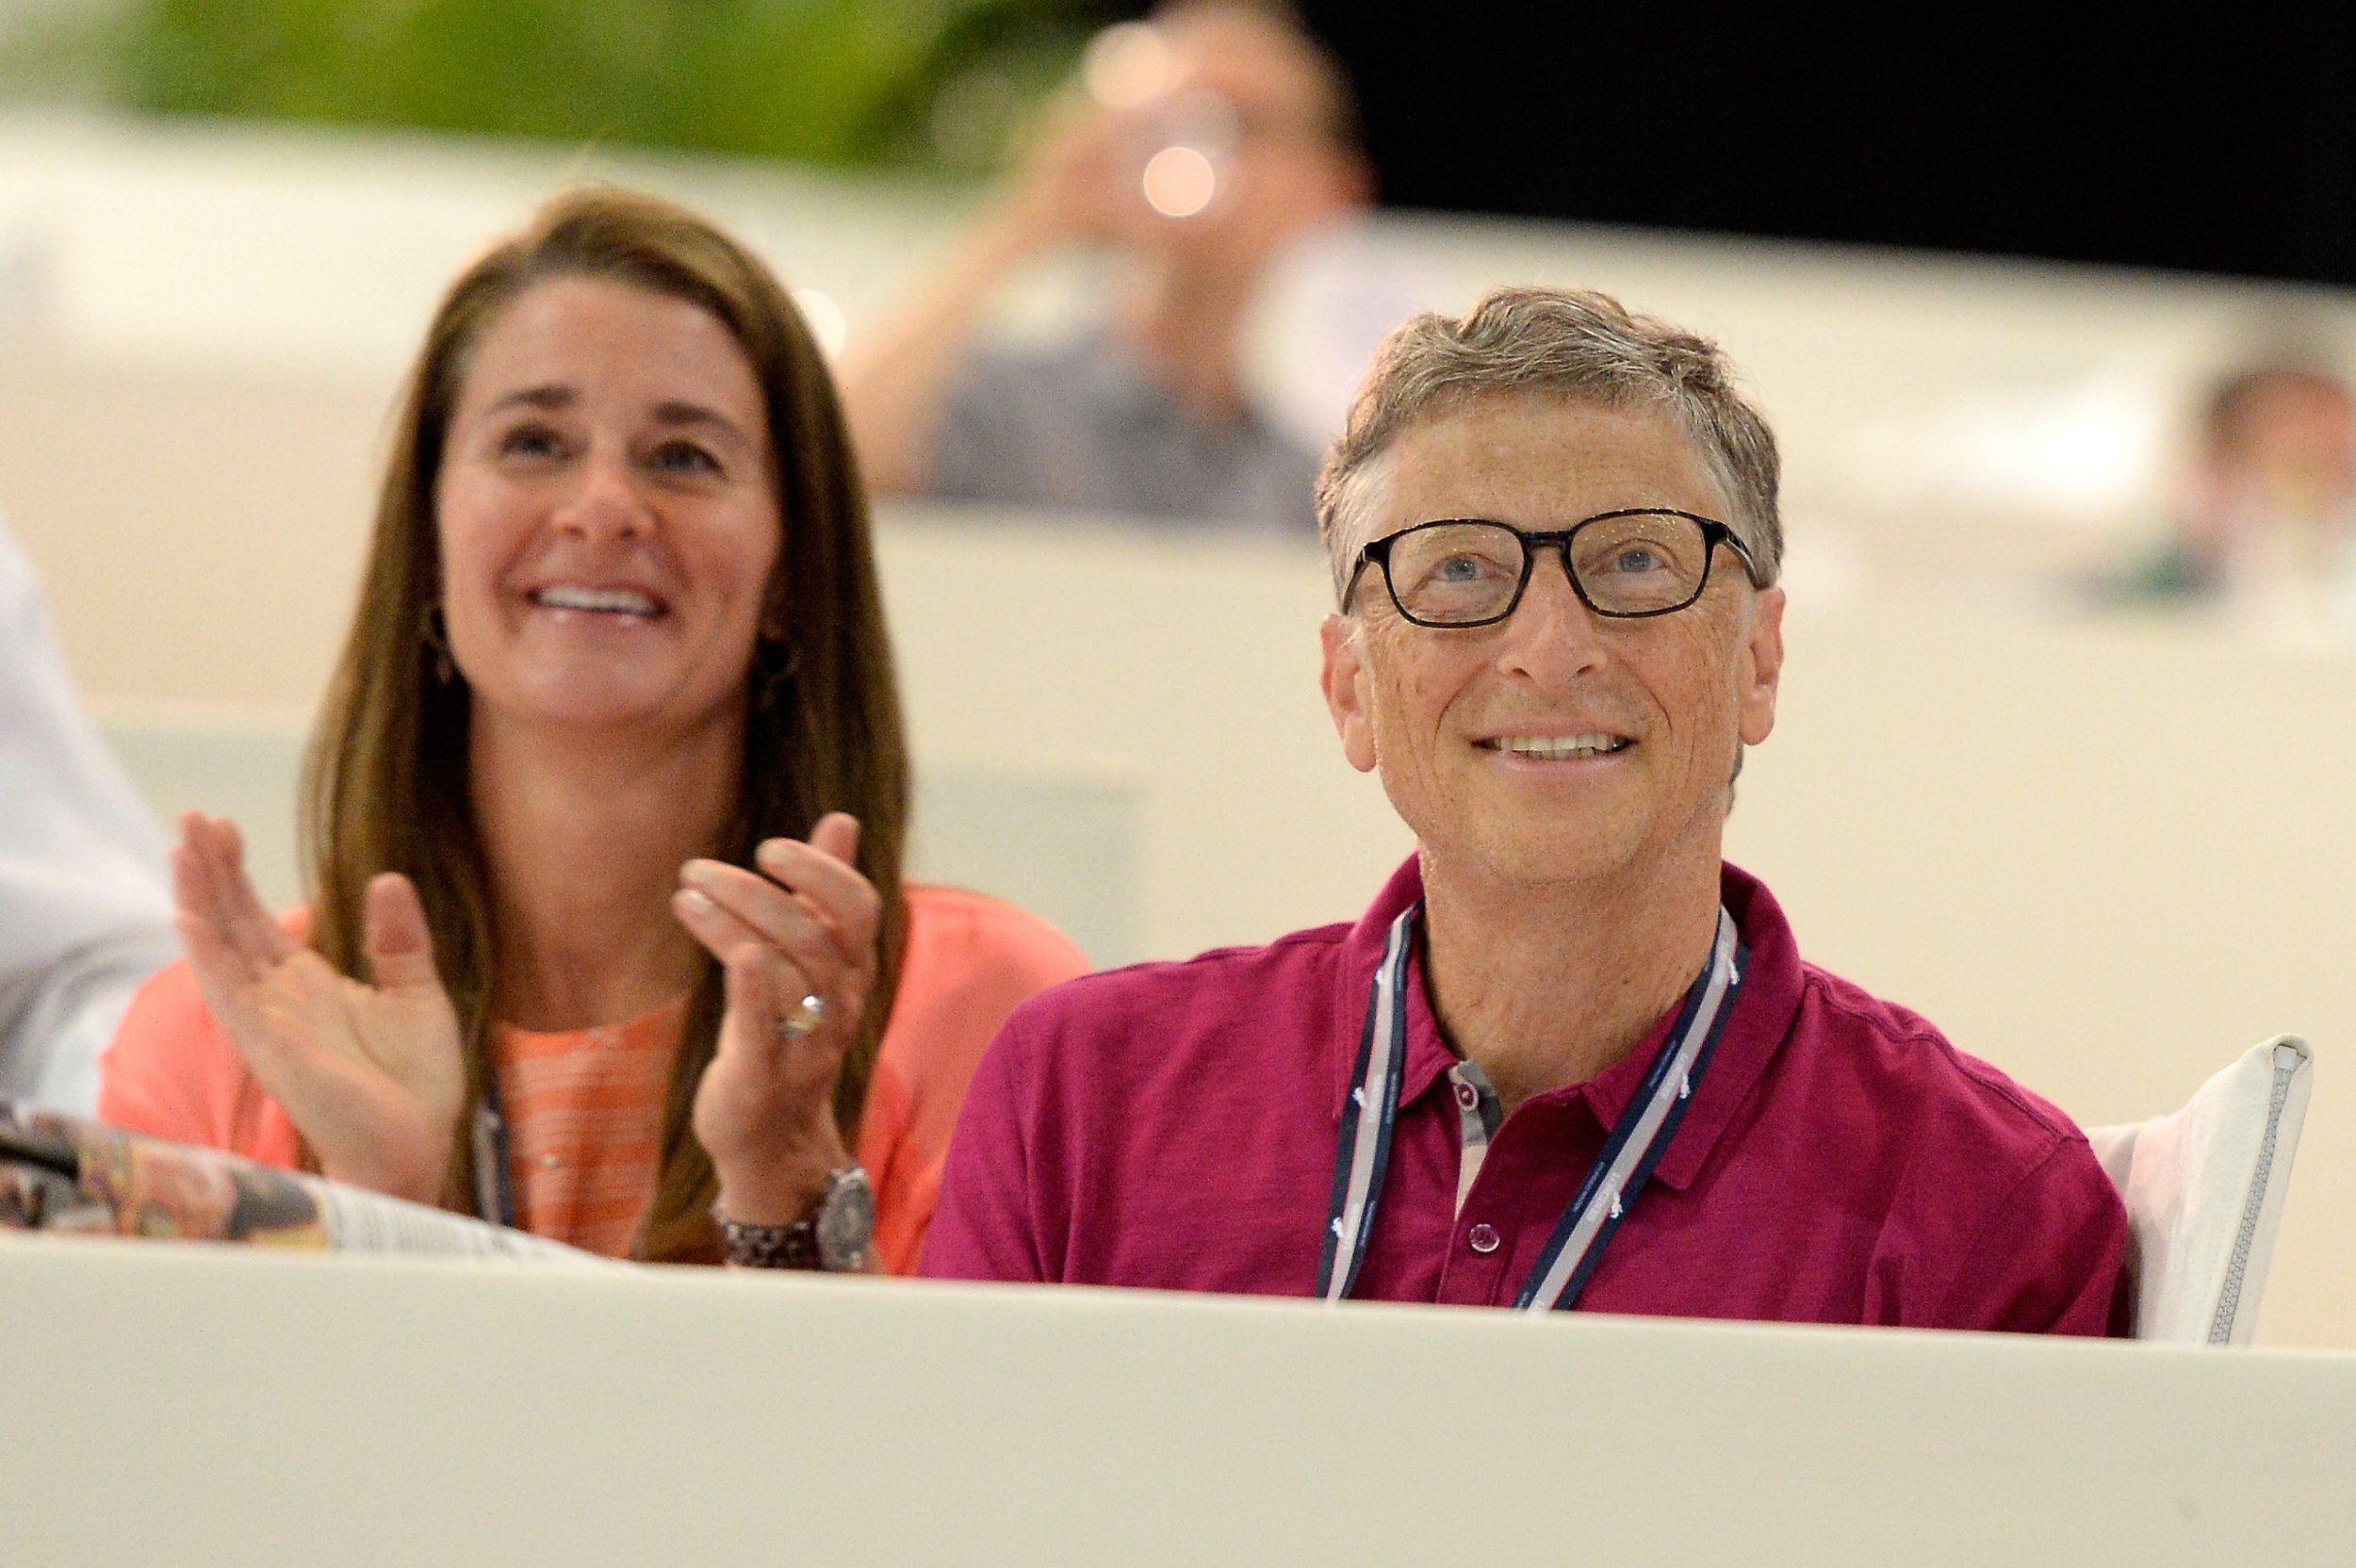 LOS ANGELES, CA - SEPTEMBER 27: Bill and Melinda Gates watch their daughter Jennifer perform during The Hollywood Reporter Trophy class at Longines Los Angeles Masters at Los Angeles Convention Center on September 27, 2014 in Los Angeles, California. (Photo by Kevork Djansezian/Getty Images for Masters Grand Slam Indoor)